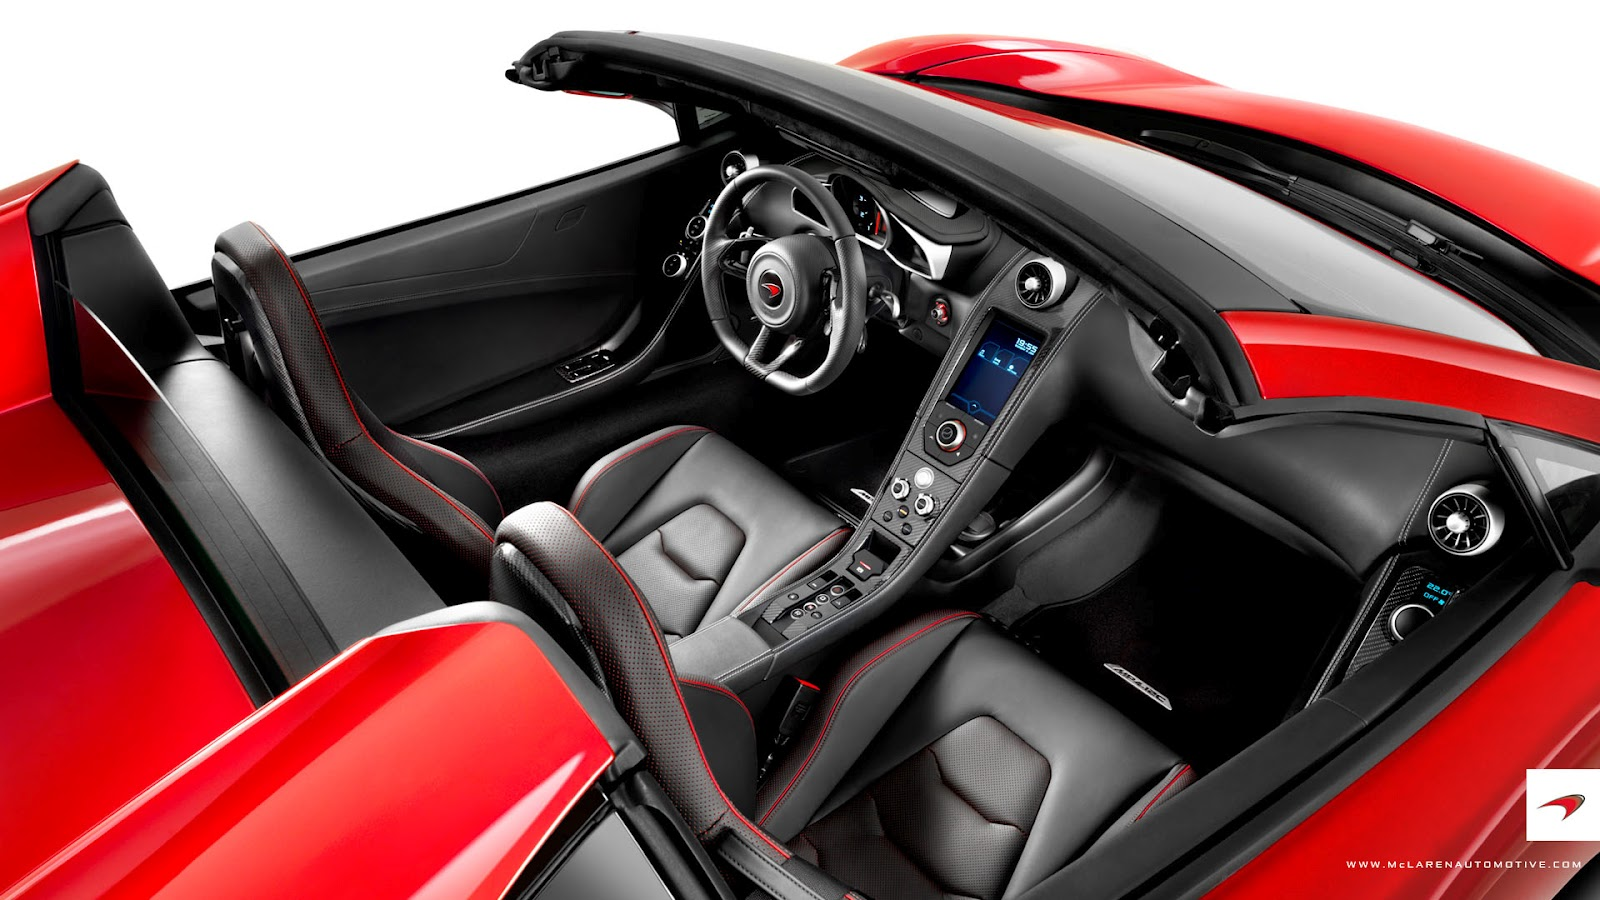 photo of interior of red McLaren 12C Spider convertible supercar